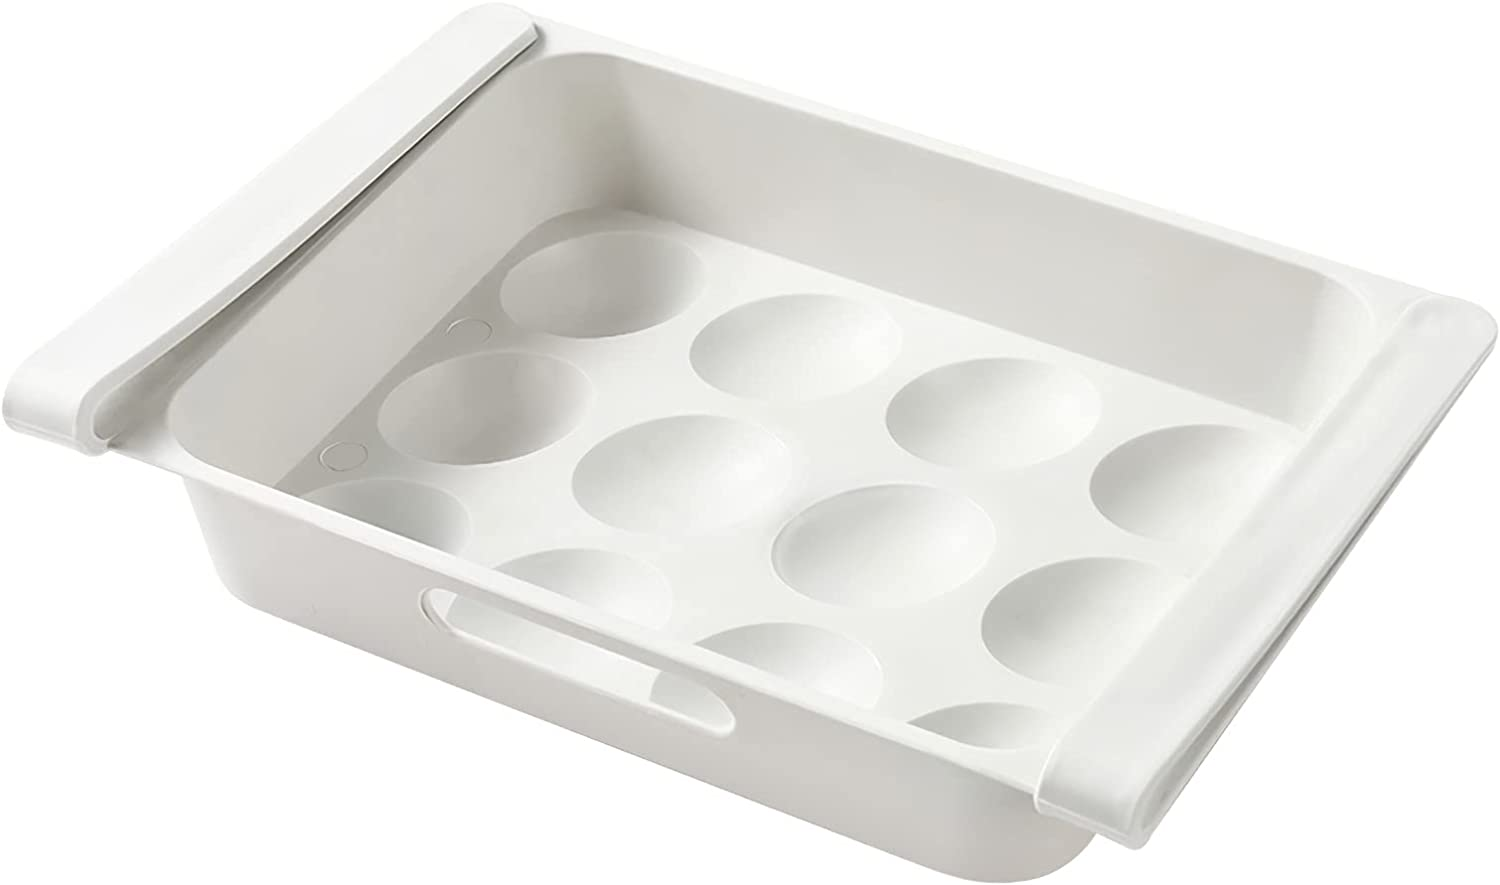 YUNYODA 12 Grids Egg Drawer Easy to Clean Egg Storage Container